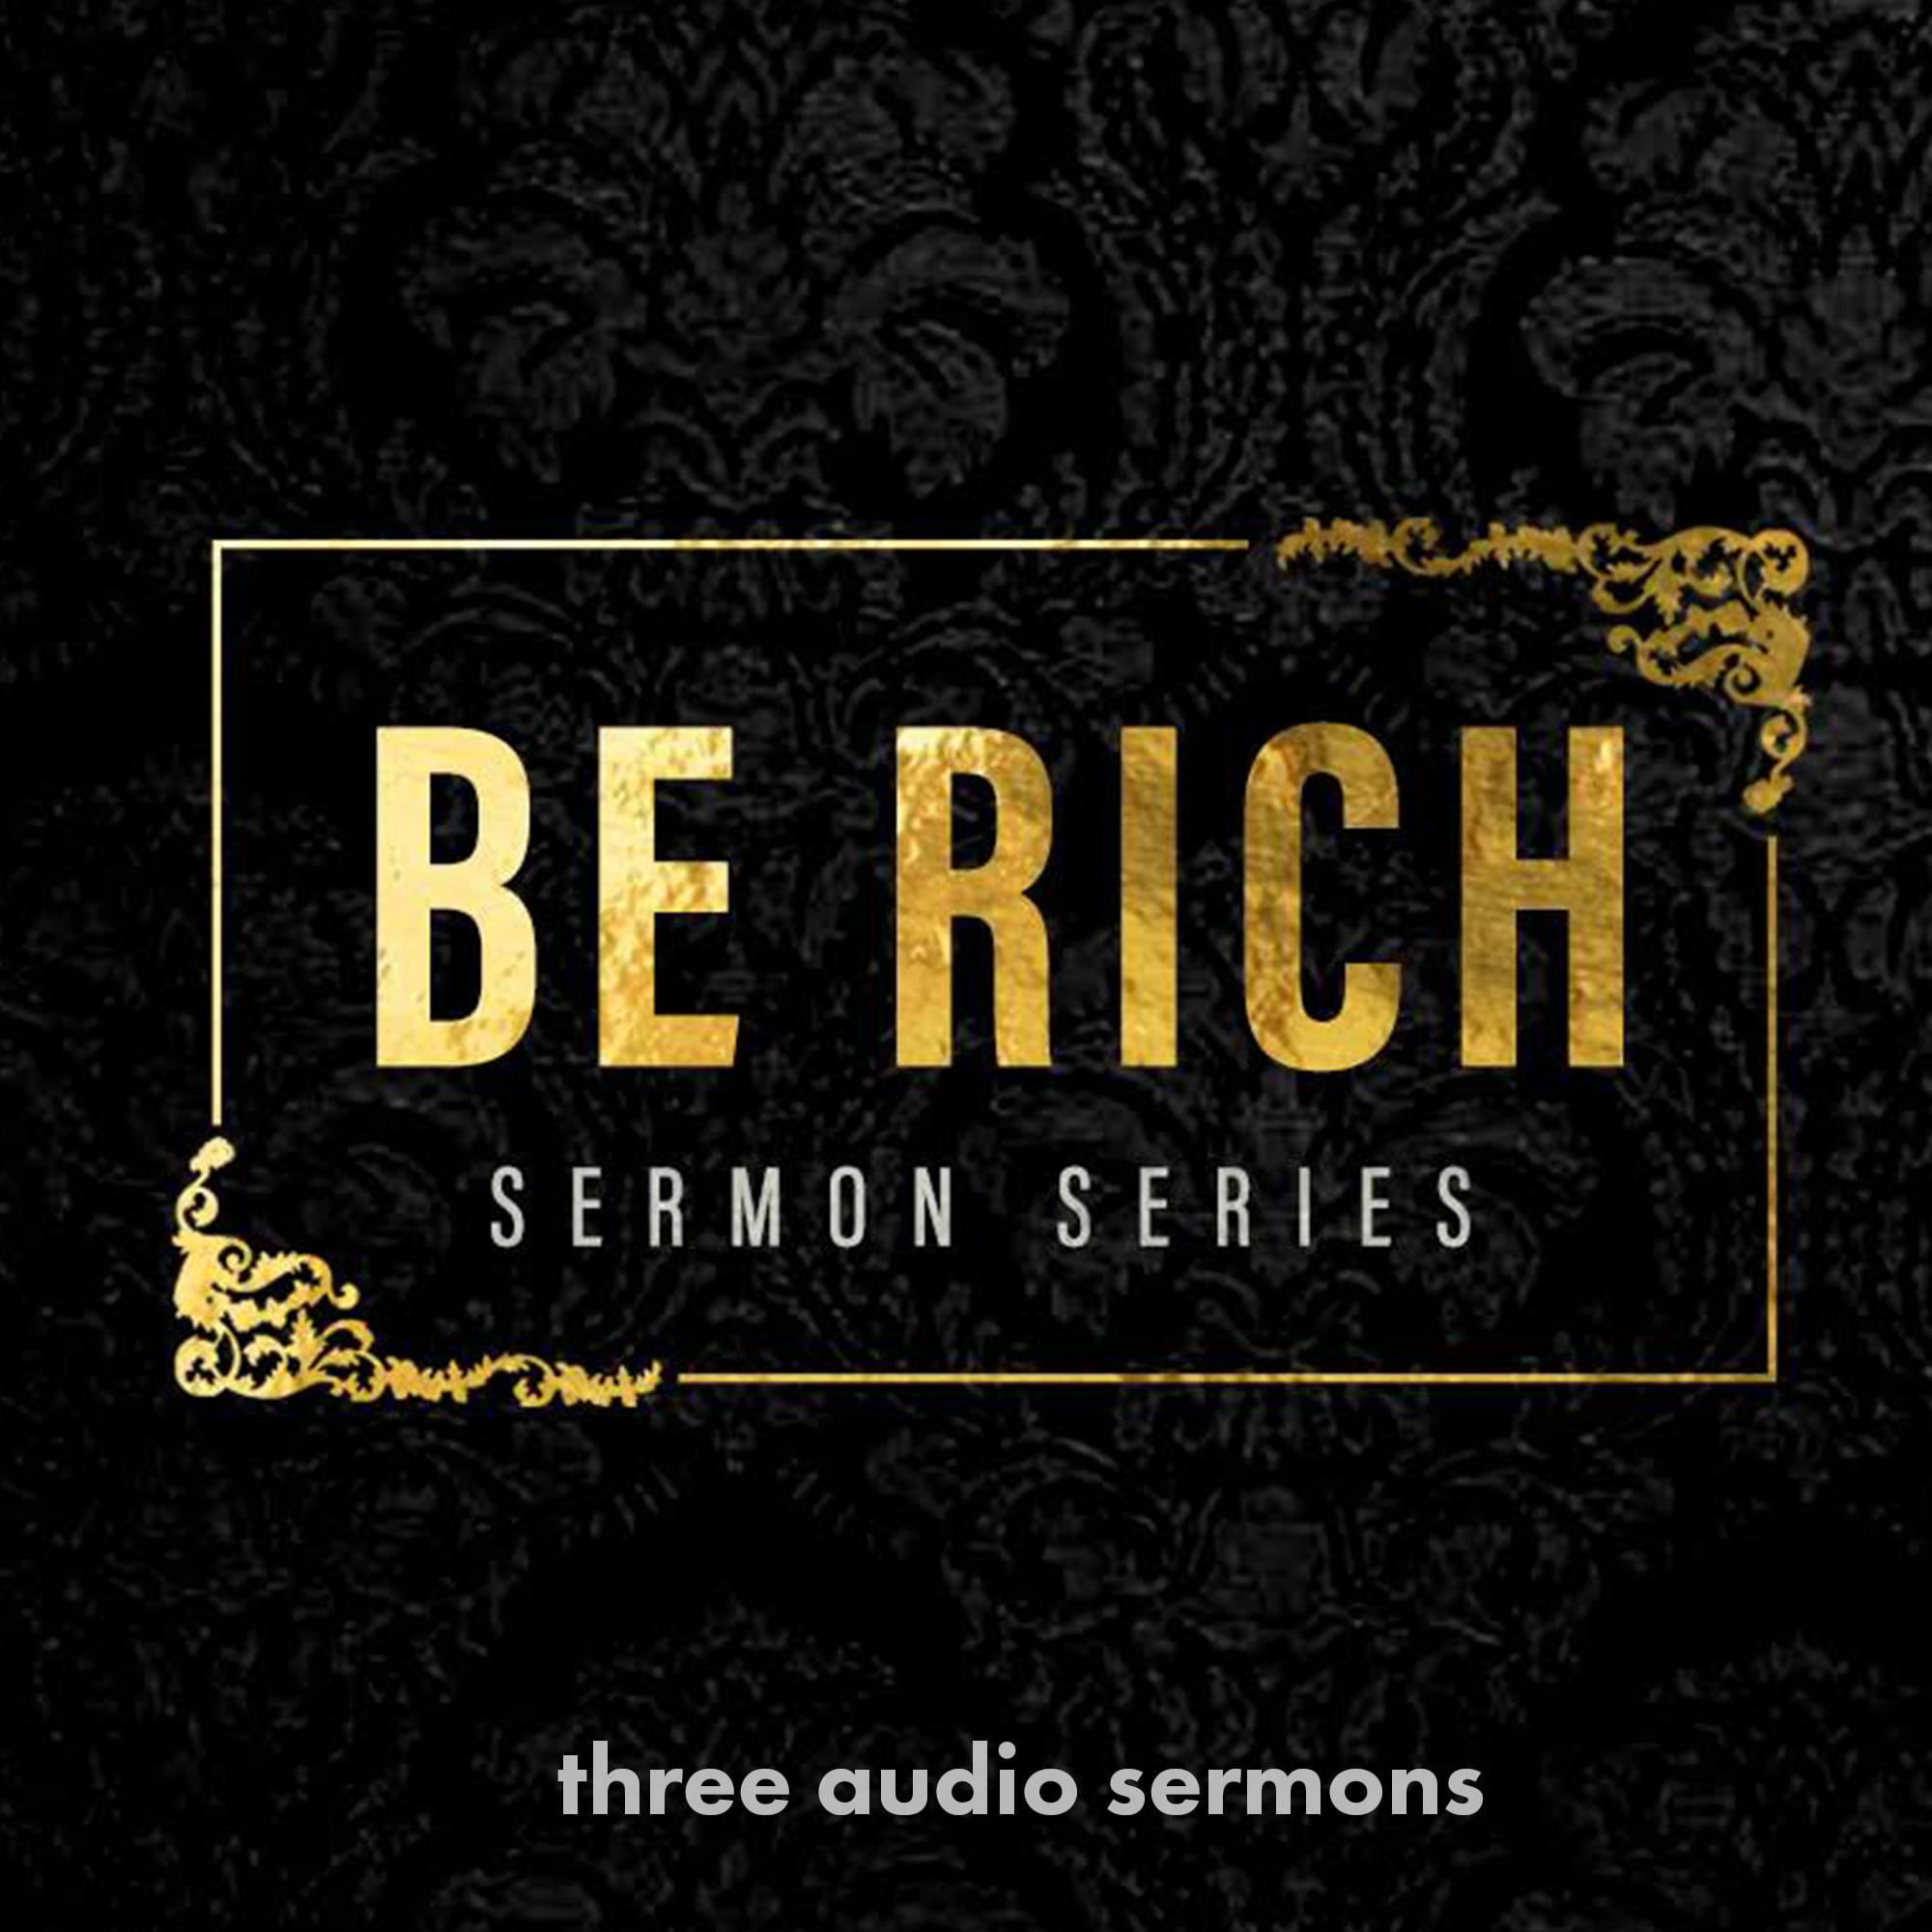 Series: Be Rich